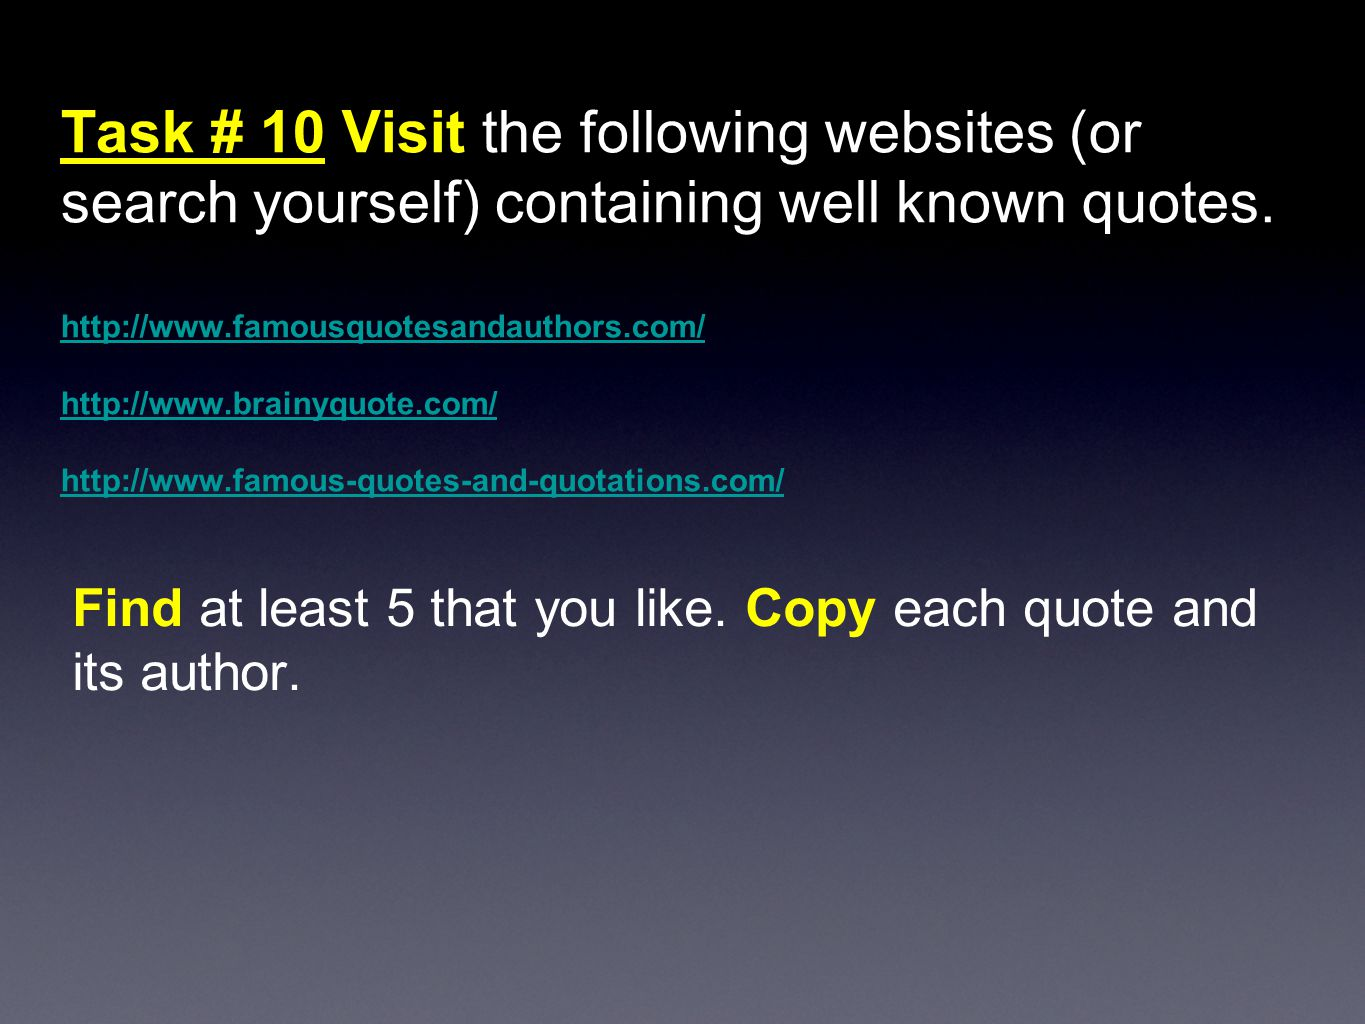 Task # 10 Visit the following websites (or search yourself) containing well known quotes.